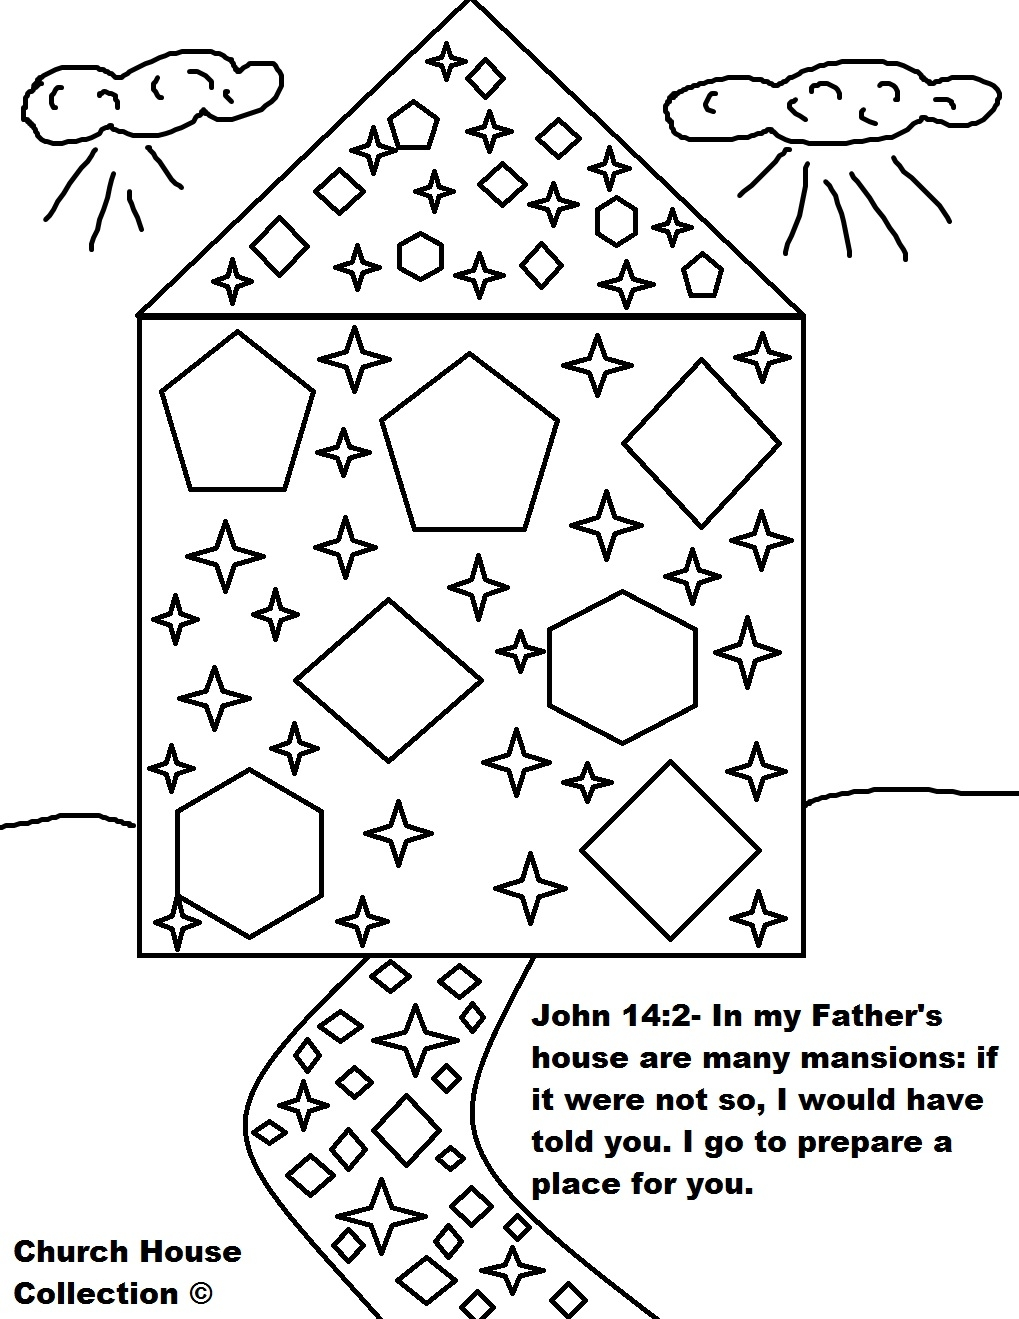 24 Heaven Coloring Pages Collections | FREE COLORING PAGES